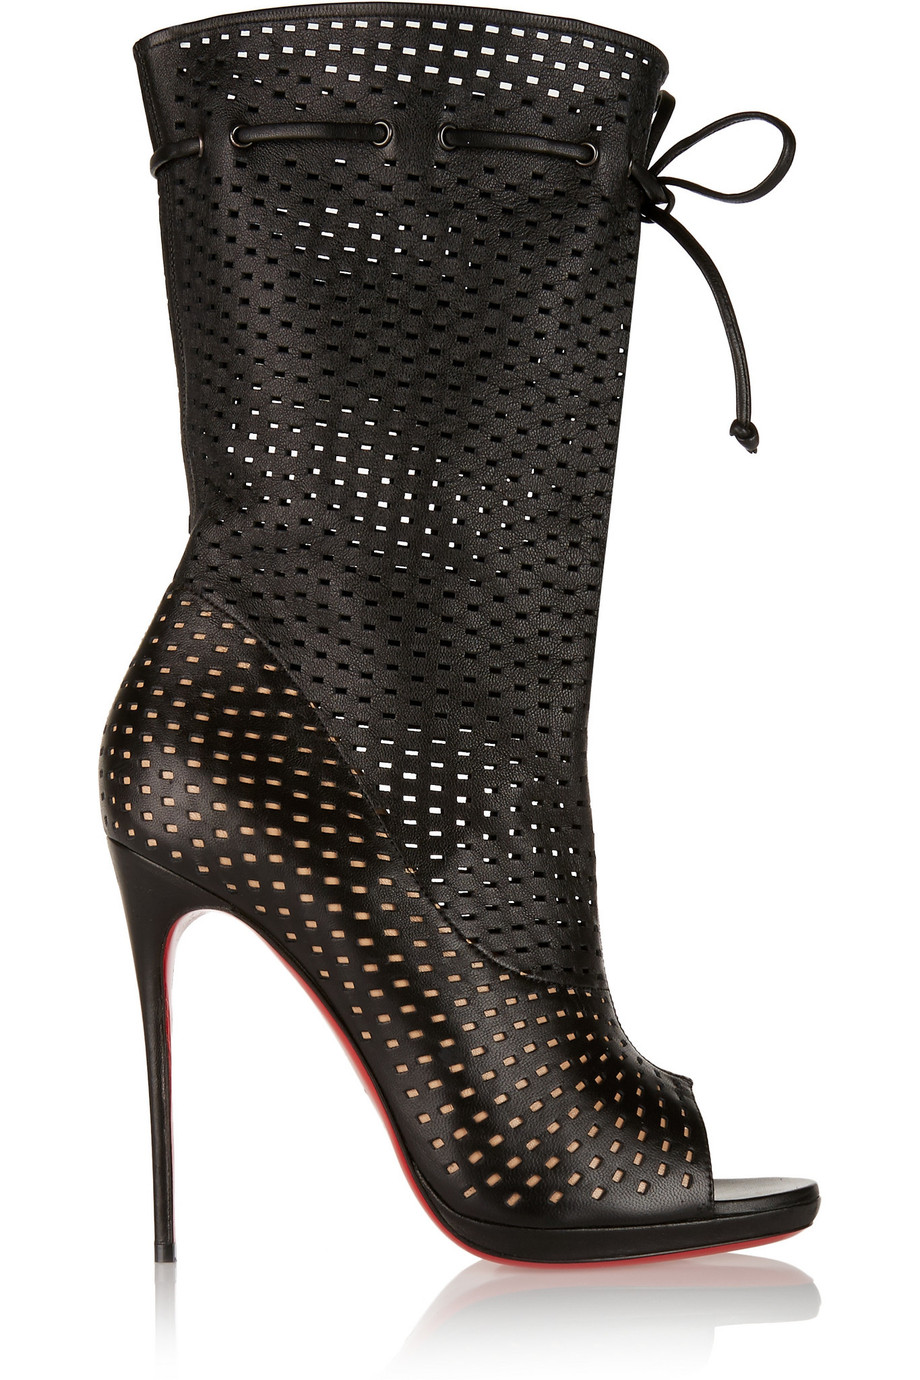 CHRISTIAN LOUBOUTIN Black Perforated Leather 'Jennifer 120' Open-Toe Boots' at THE OUTNET.COM